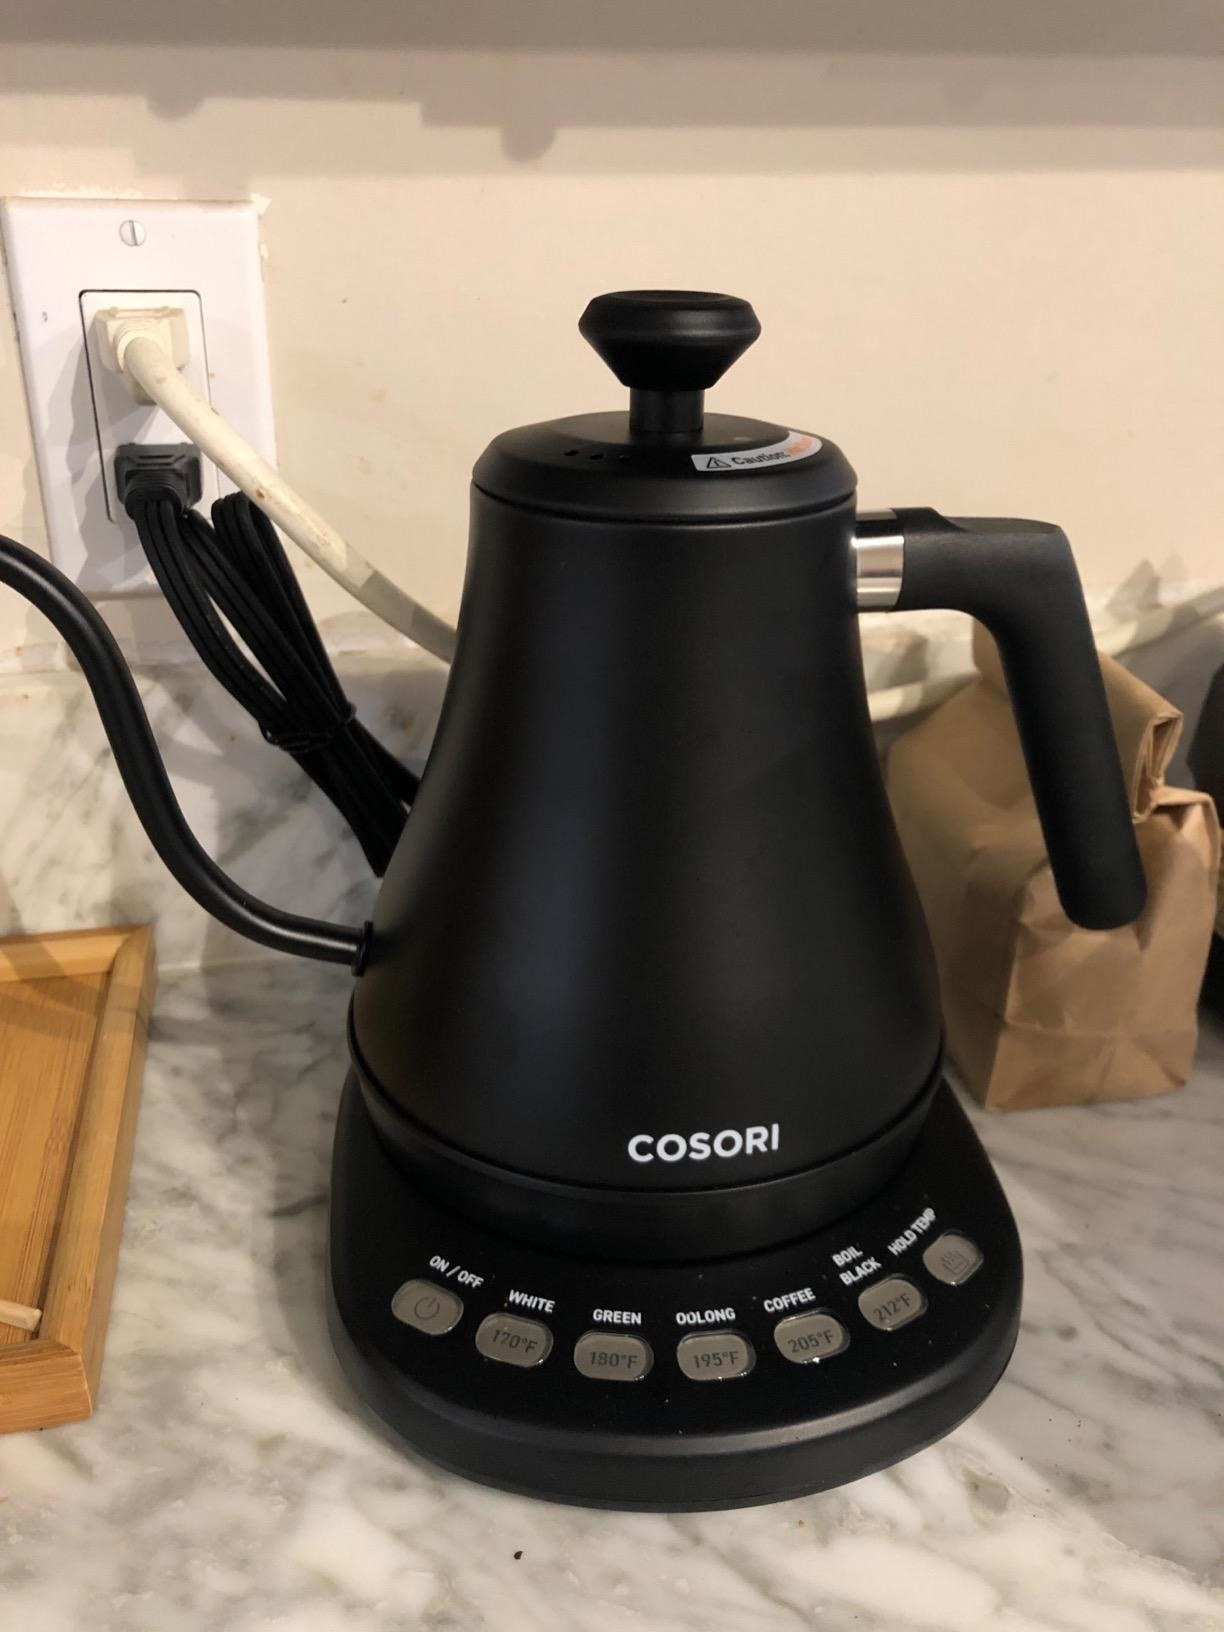 Reviewer image of the cosori electric kettle on a kitchen counter